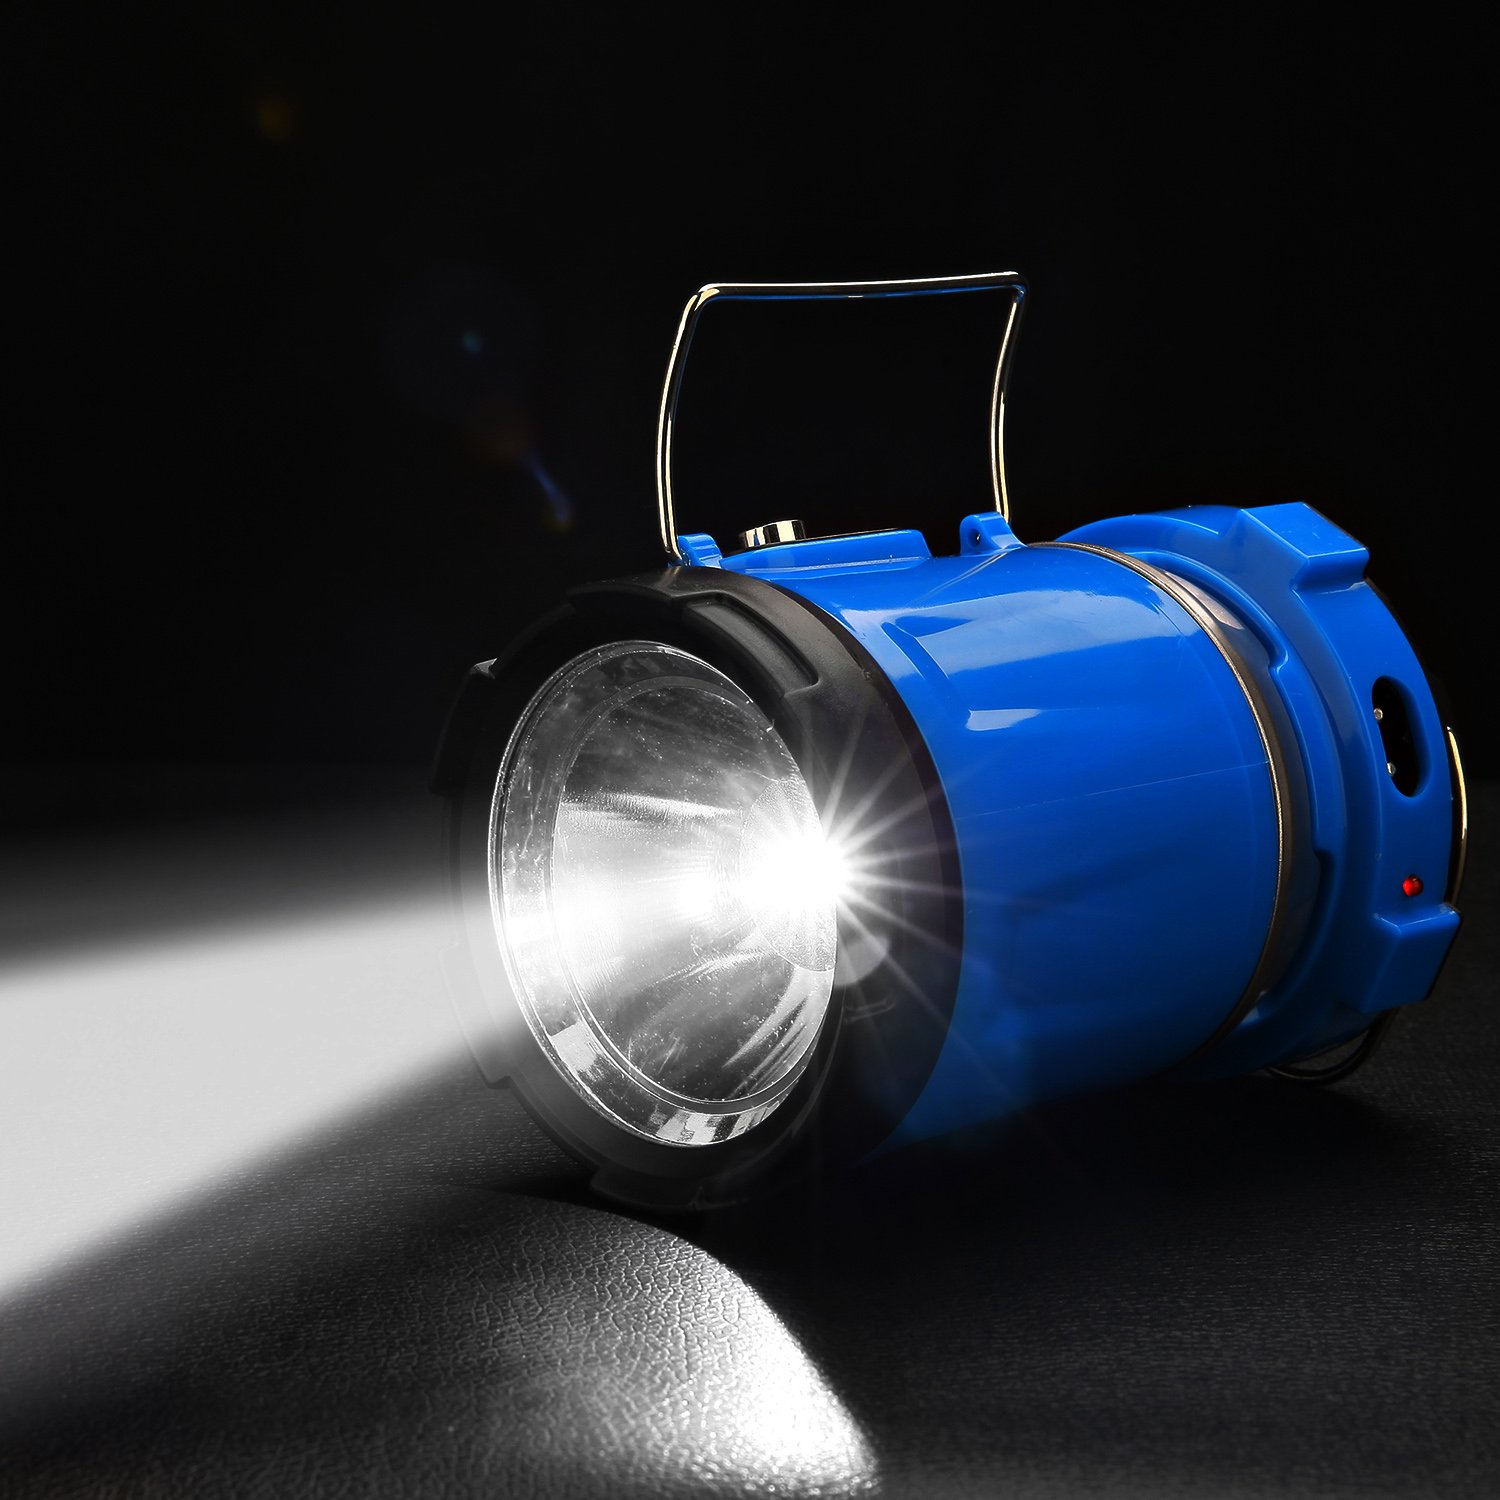 Camping Lantern Light, IRuiYinGo Rechargeable Lamp Solar LED Flashlight with Hanging Blue Color, Great light for Camping/ Hiking/ Backpacking...Outdoor Activities by IRuiYinGo (Image #6)